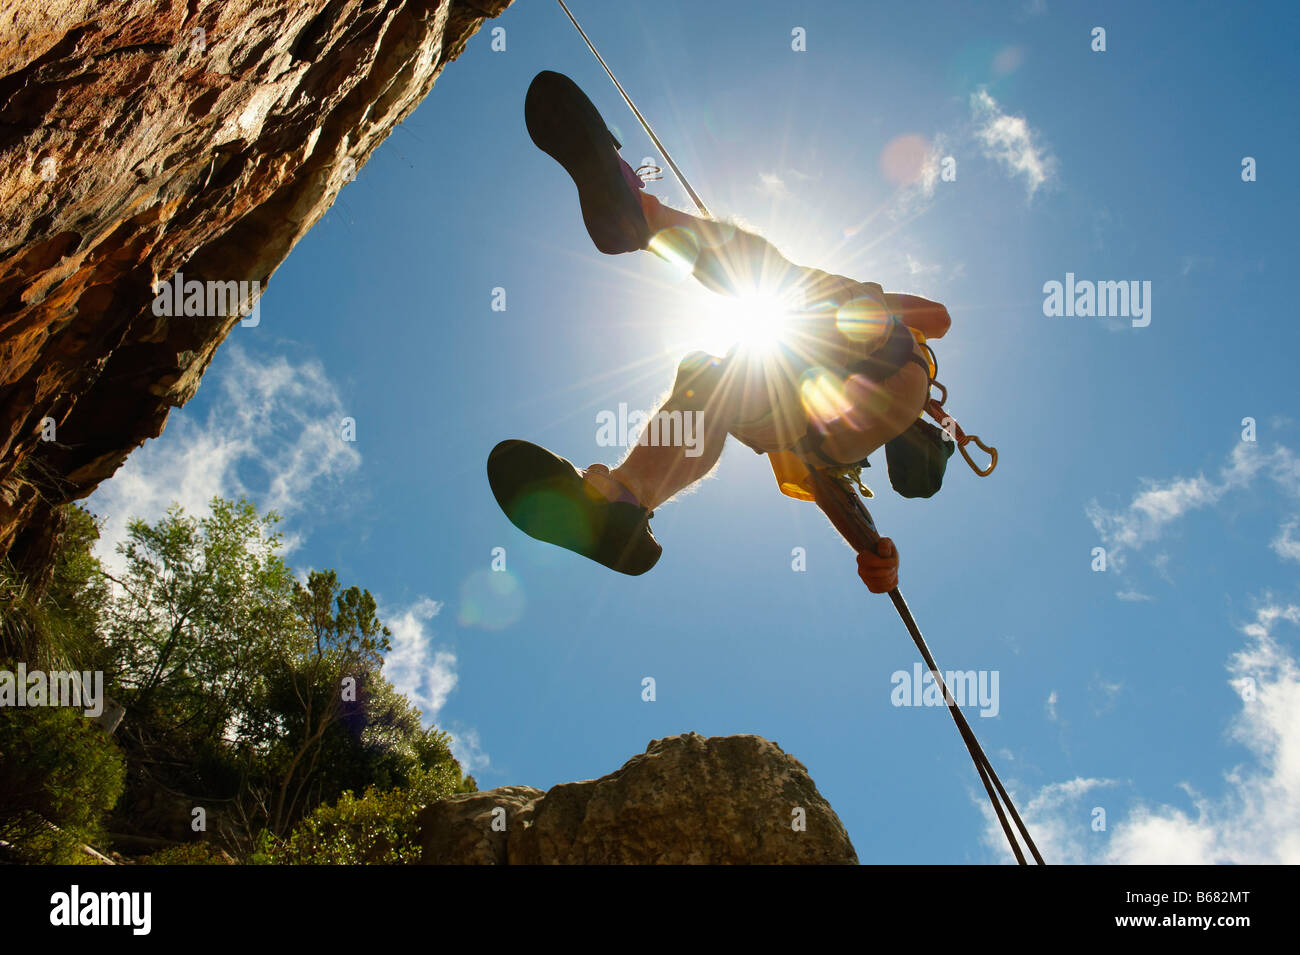 Man descending on abseil rope - Stock Image